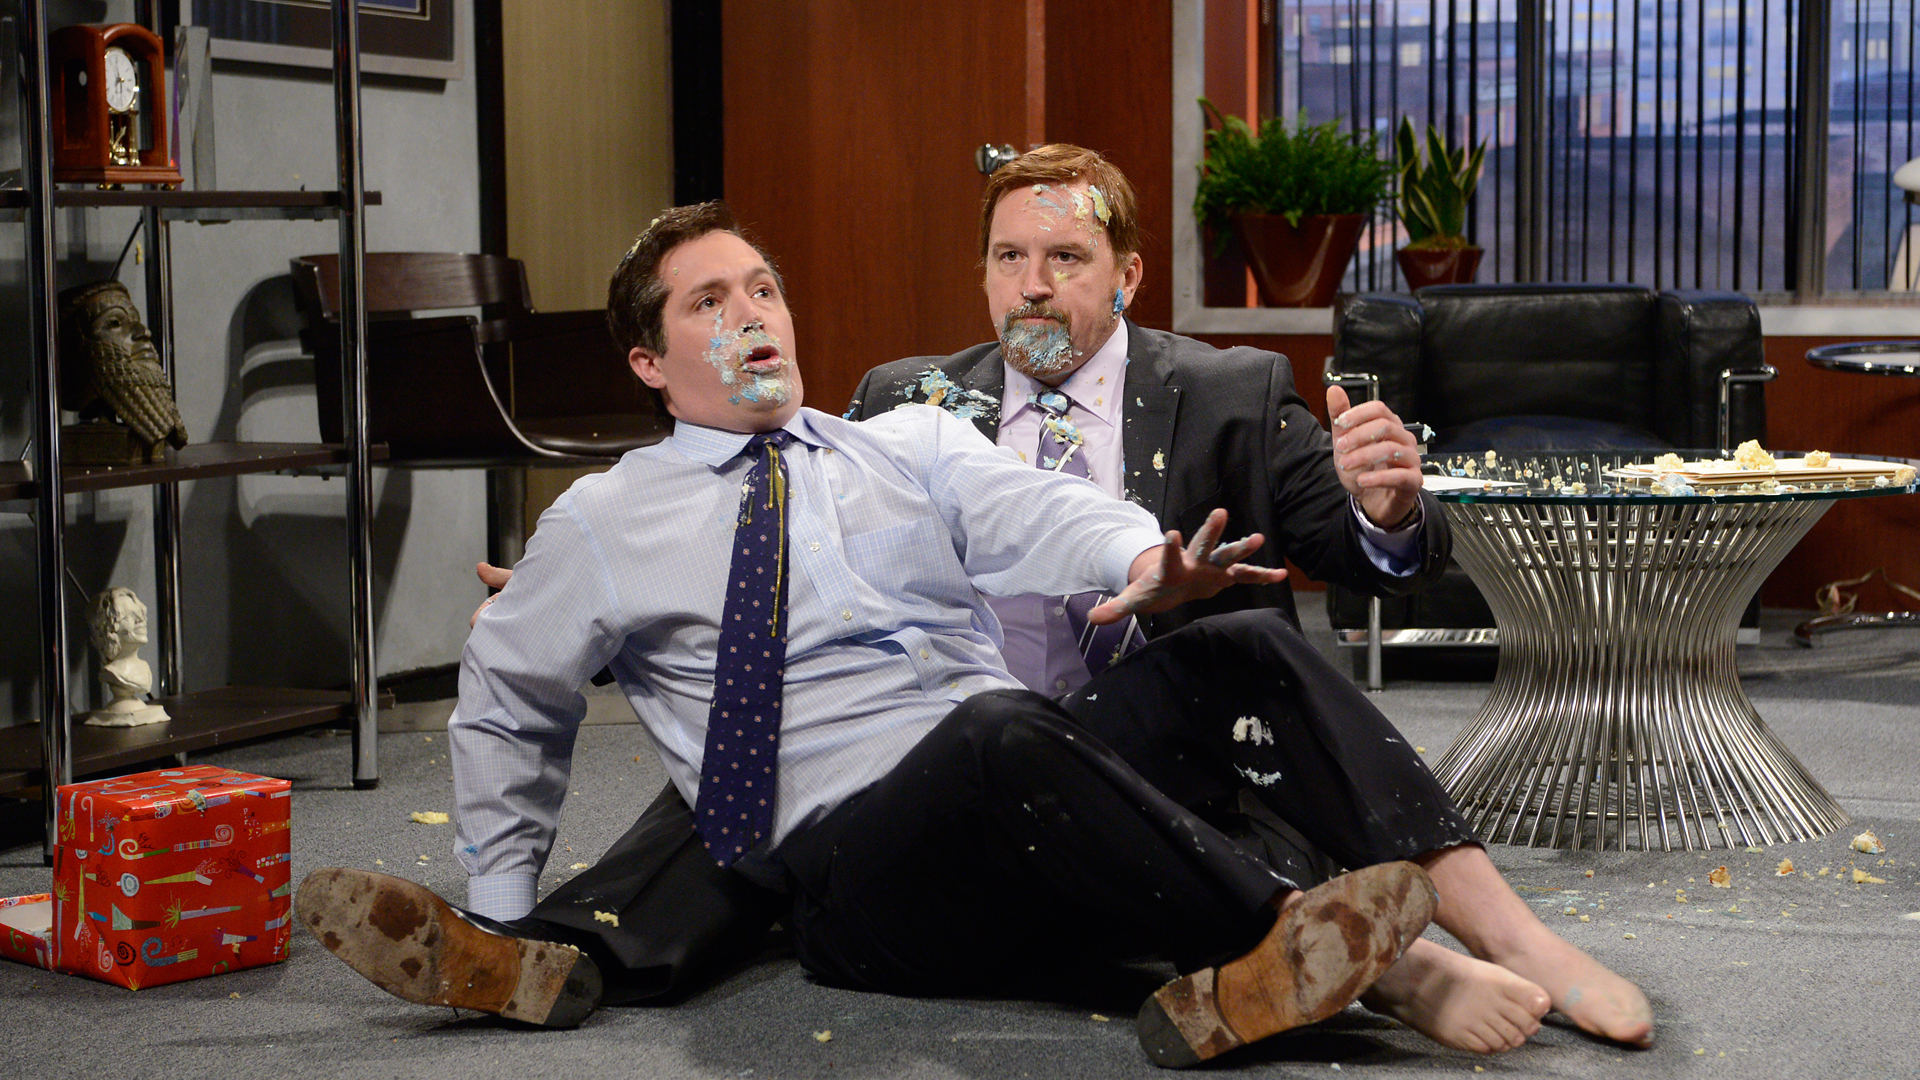 Watch Office Boss with Louis C.K. From Saturday Night Live ...